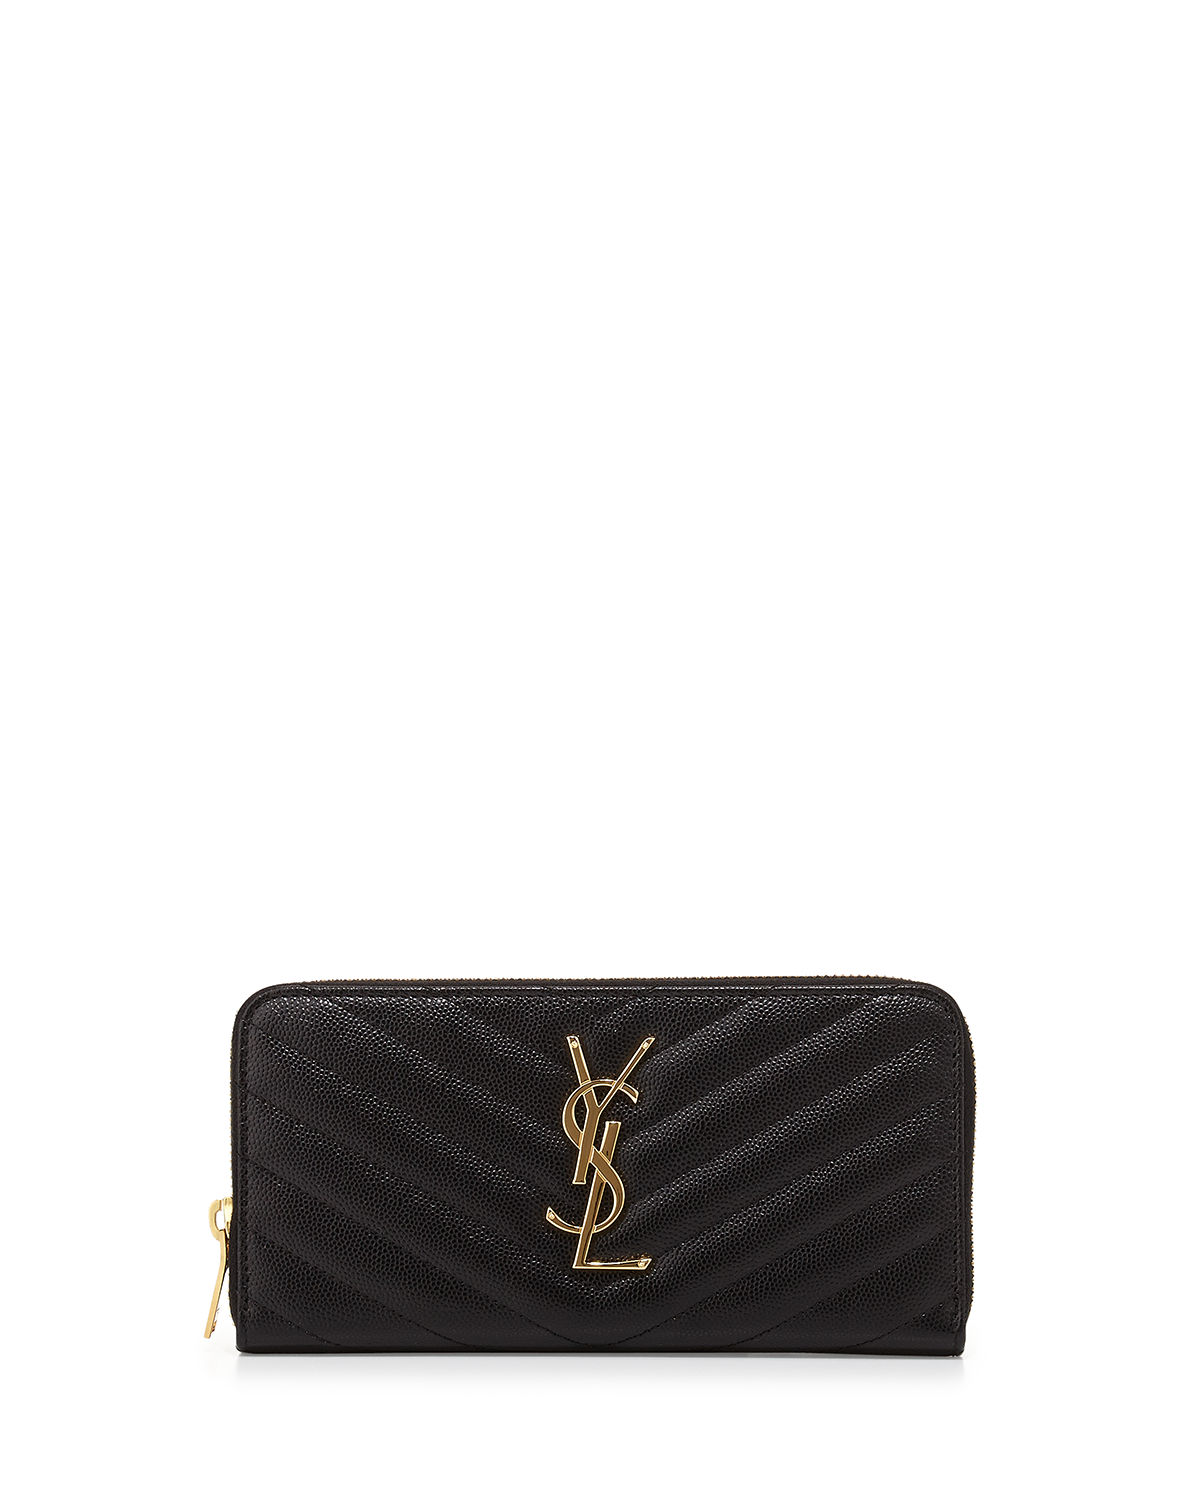 00fffa0f756b Saint Laurent Monogram YSL Matelasse Zip-Around Wallet